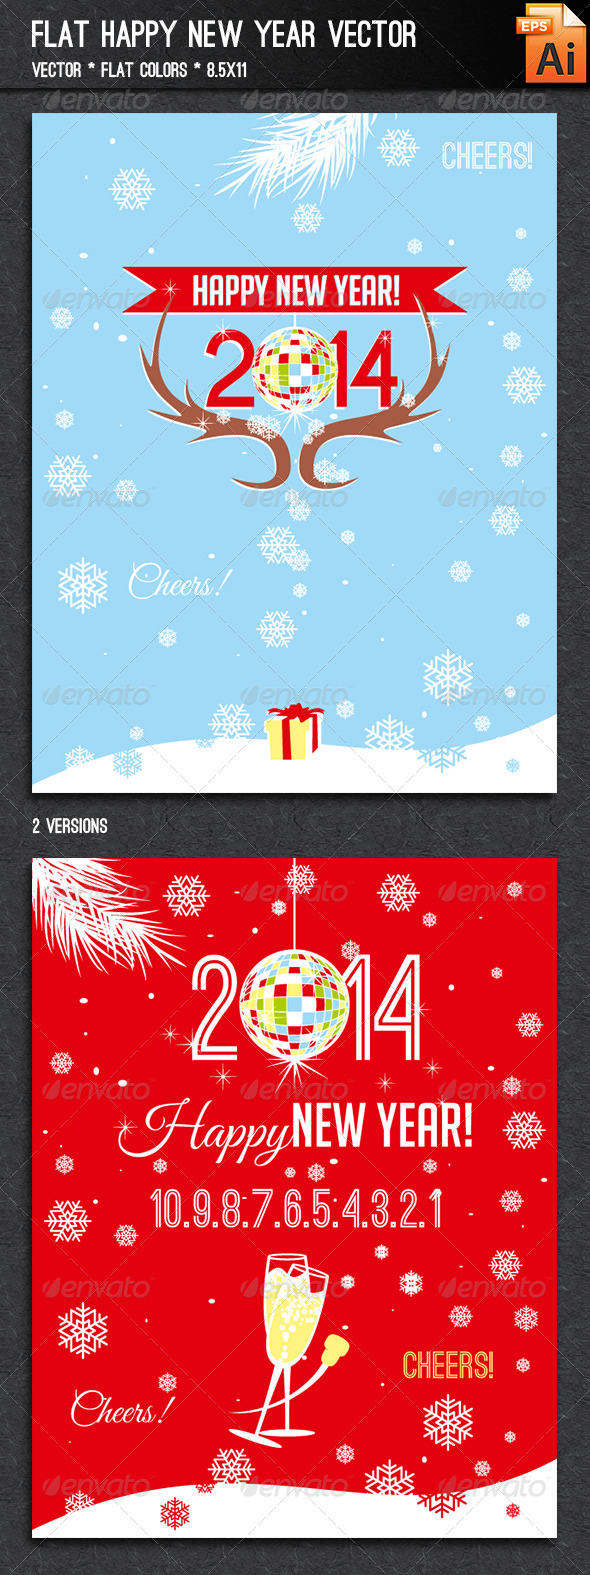 Flat Happy New Year Vector - New Year Seasons/Holidays